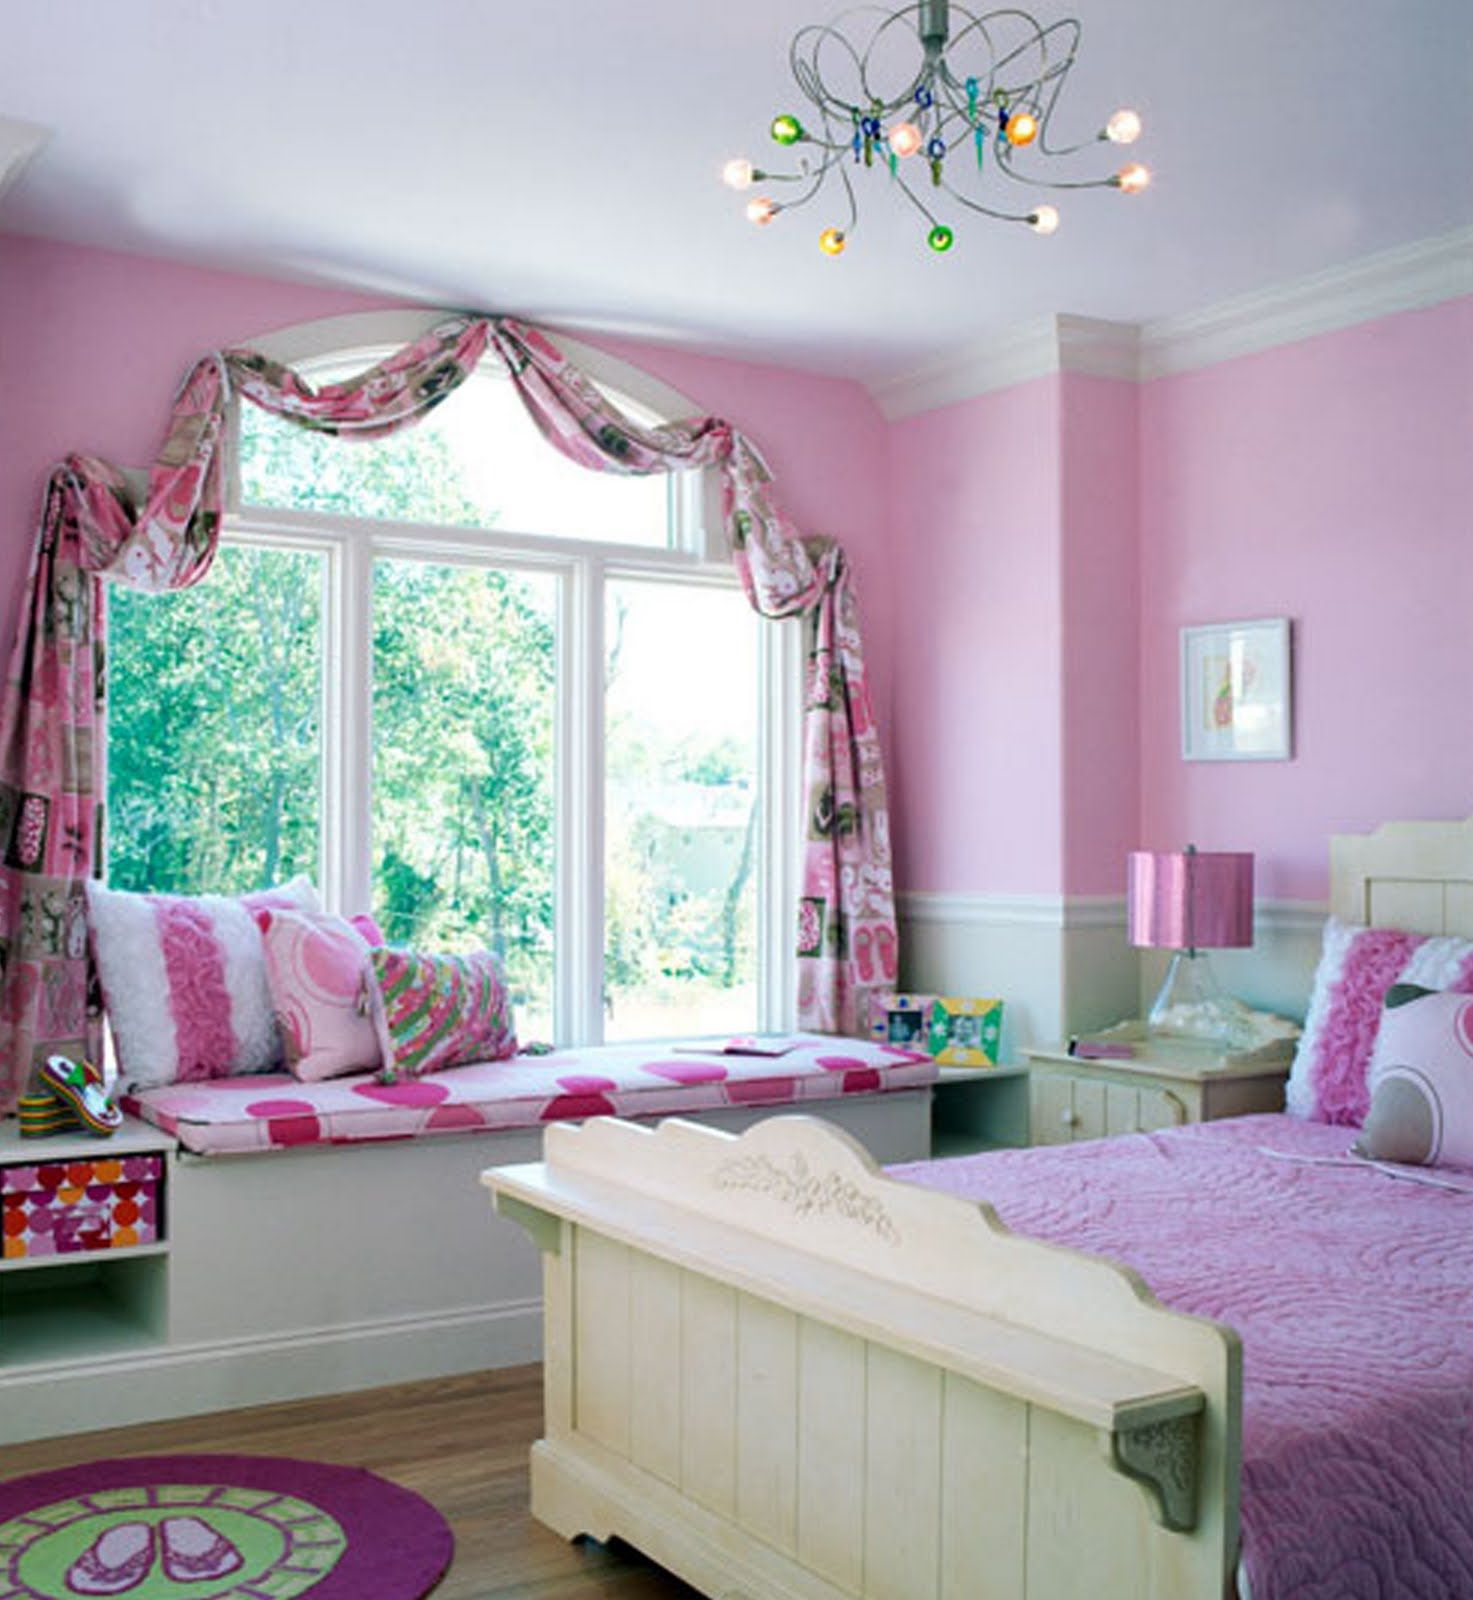 Purple and pink bedrooms - Excellent Girls Room Design Ideas With Creative Purple Floral